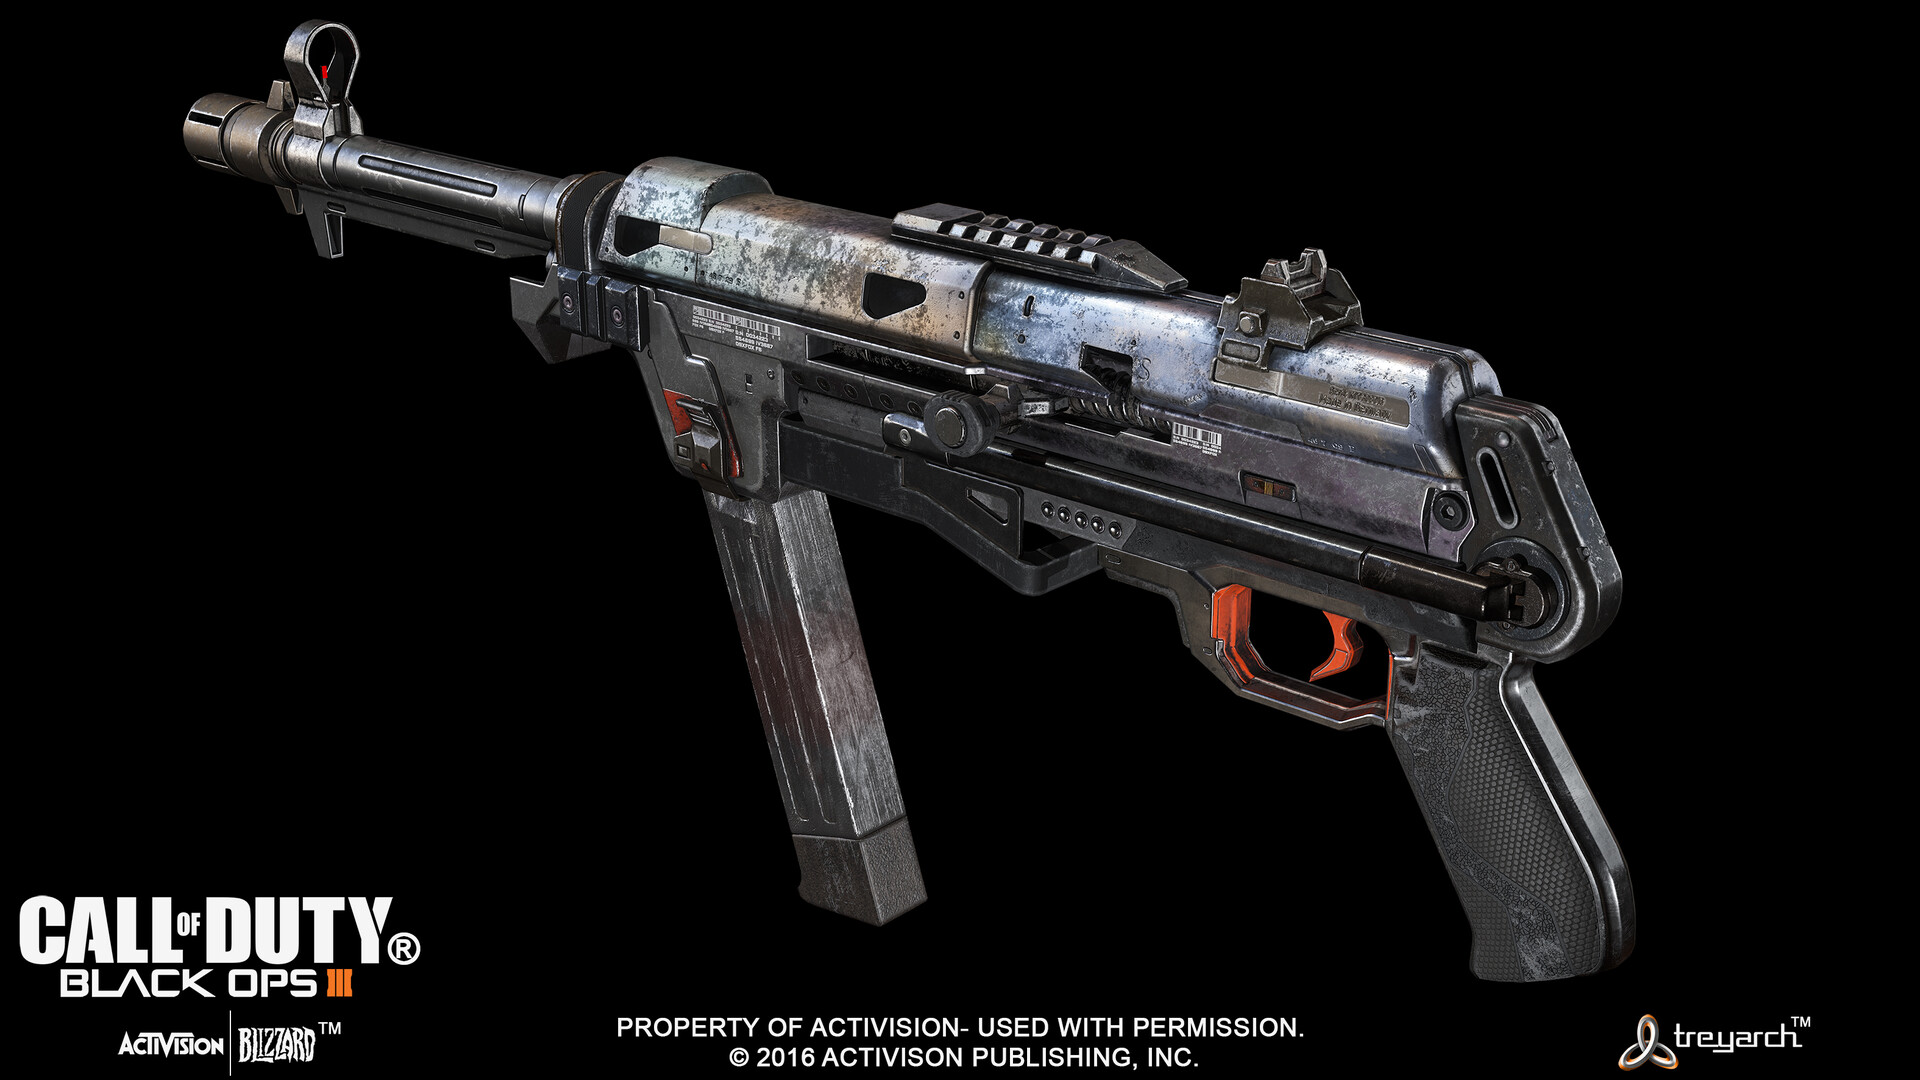 ArtStation - Call of Duty Black Ops 3 - HG40 smg, Geoffrey Ng